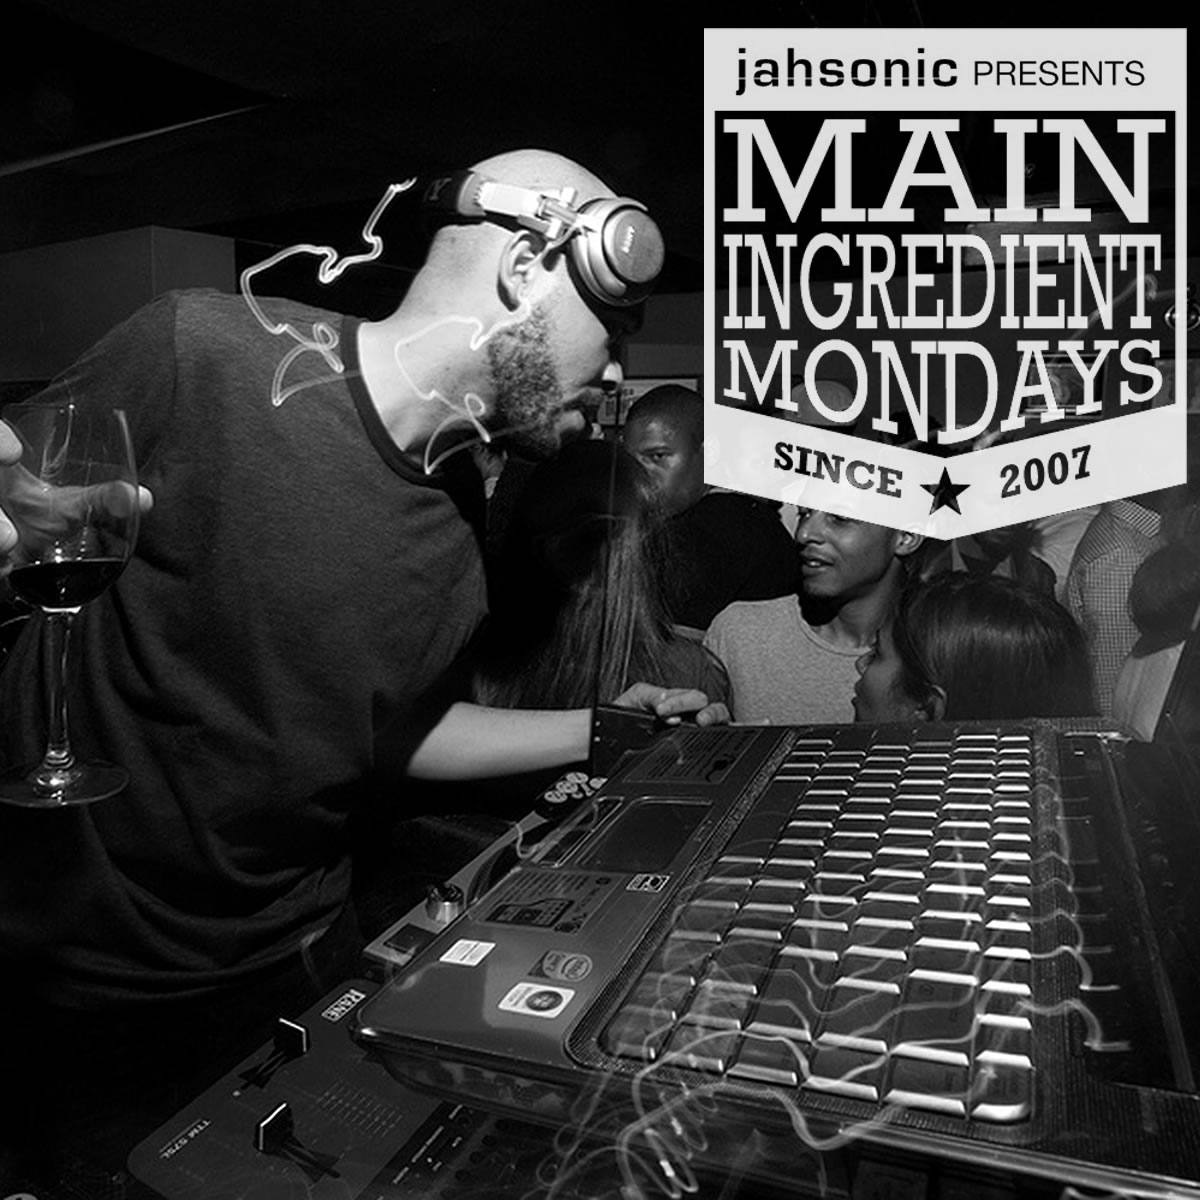 DJ Stylus at Main Ingredient Monday, Mon. 7/9